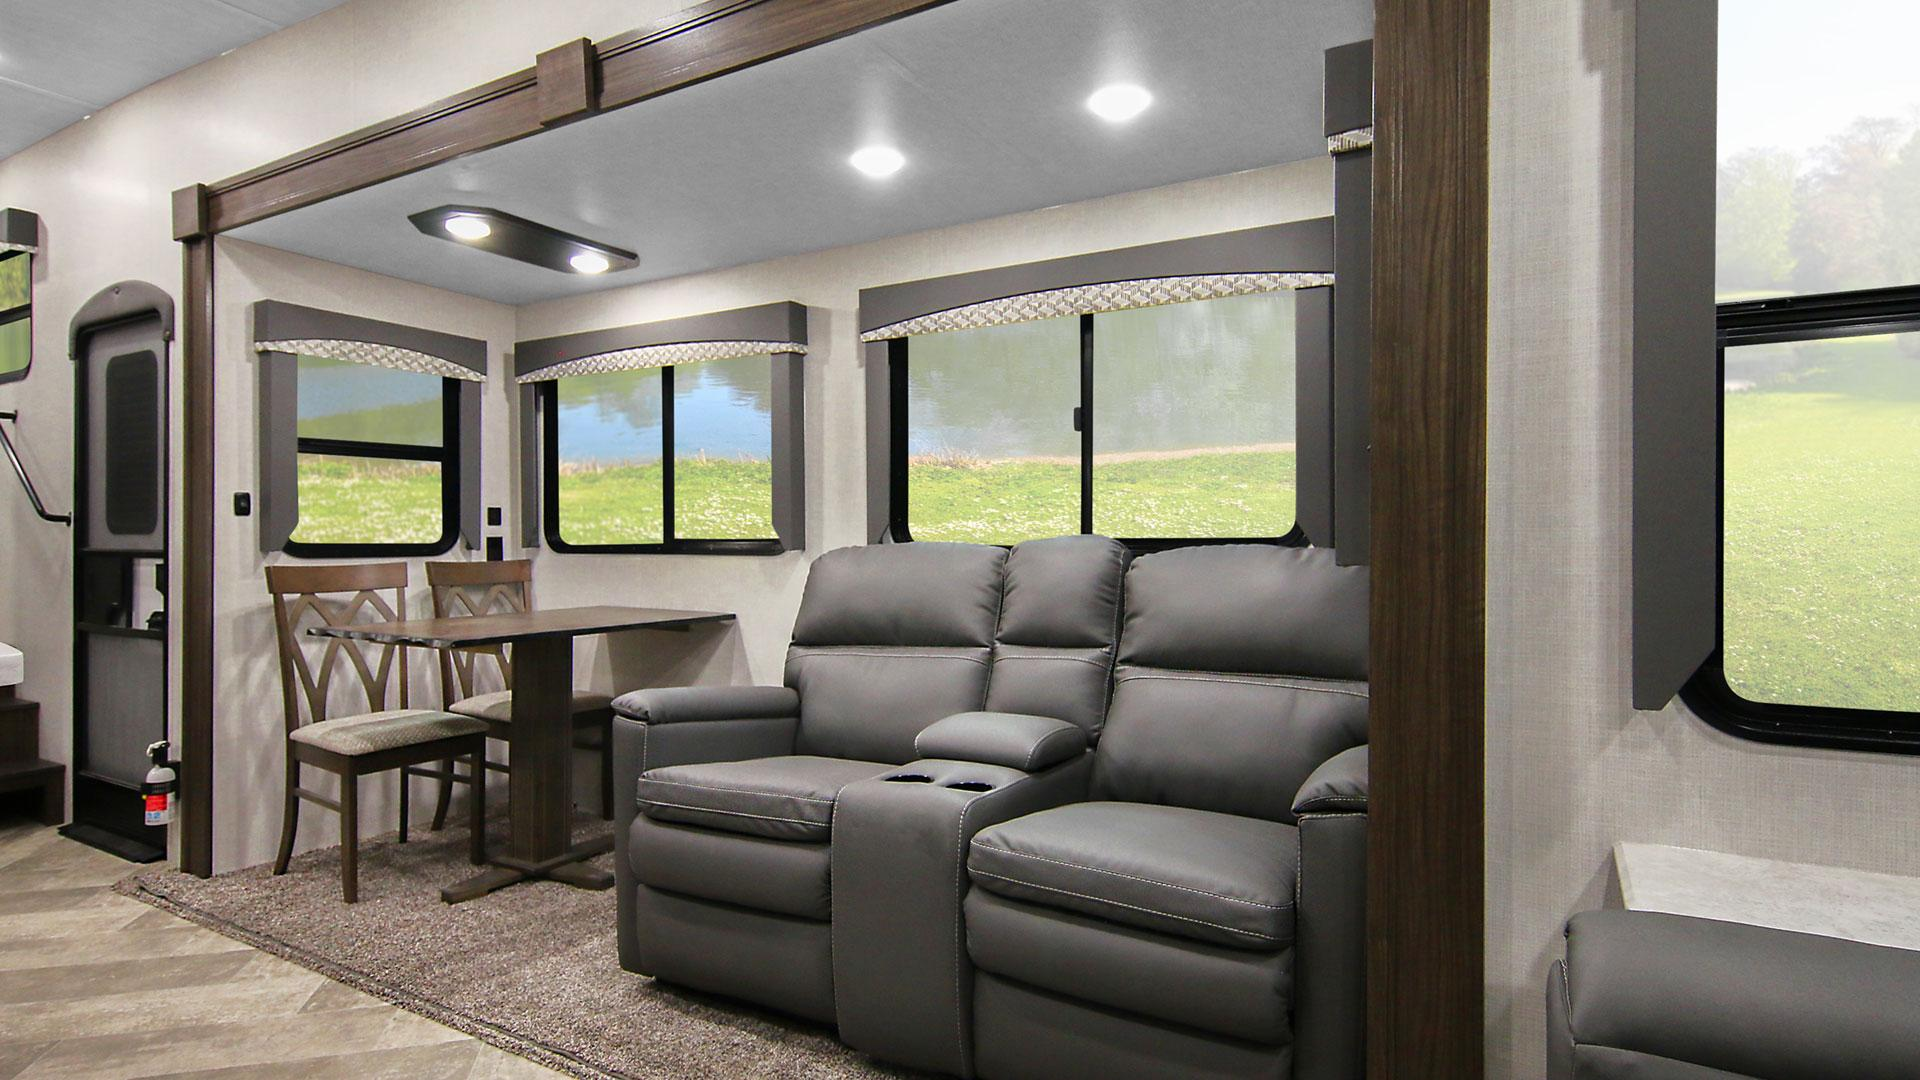 Voyage Fifth Wheel V3134RL Slideout Featuring Theater Seating and Dining Table and Two Chairs